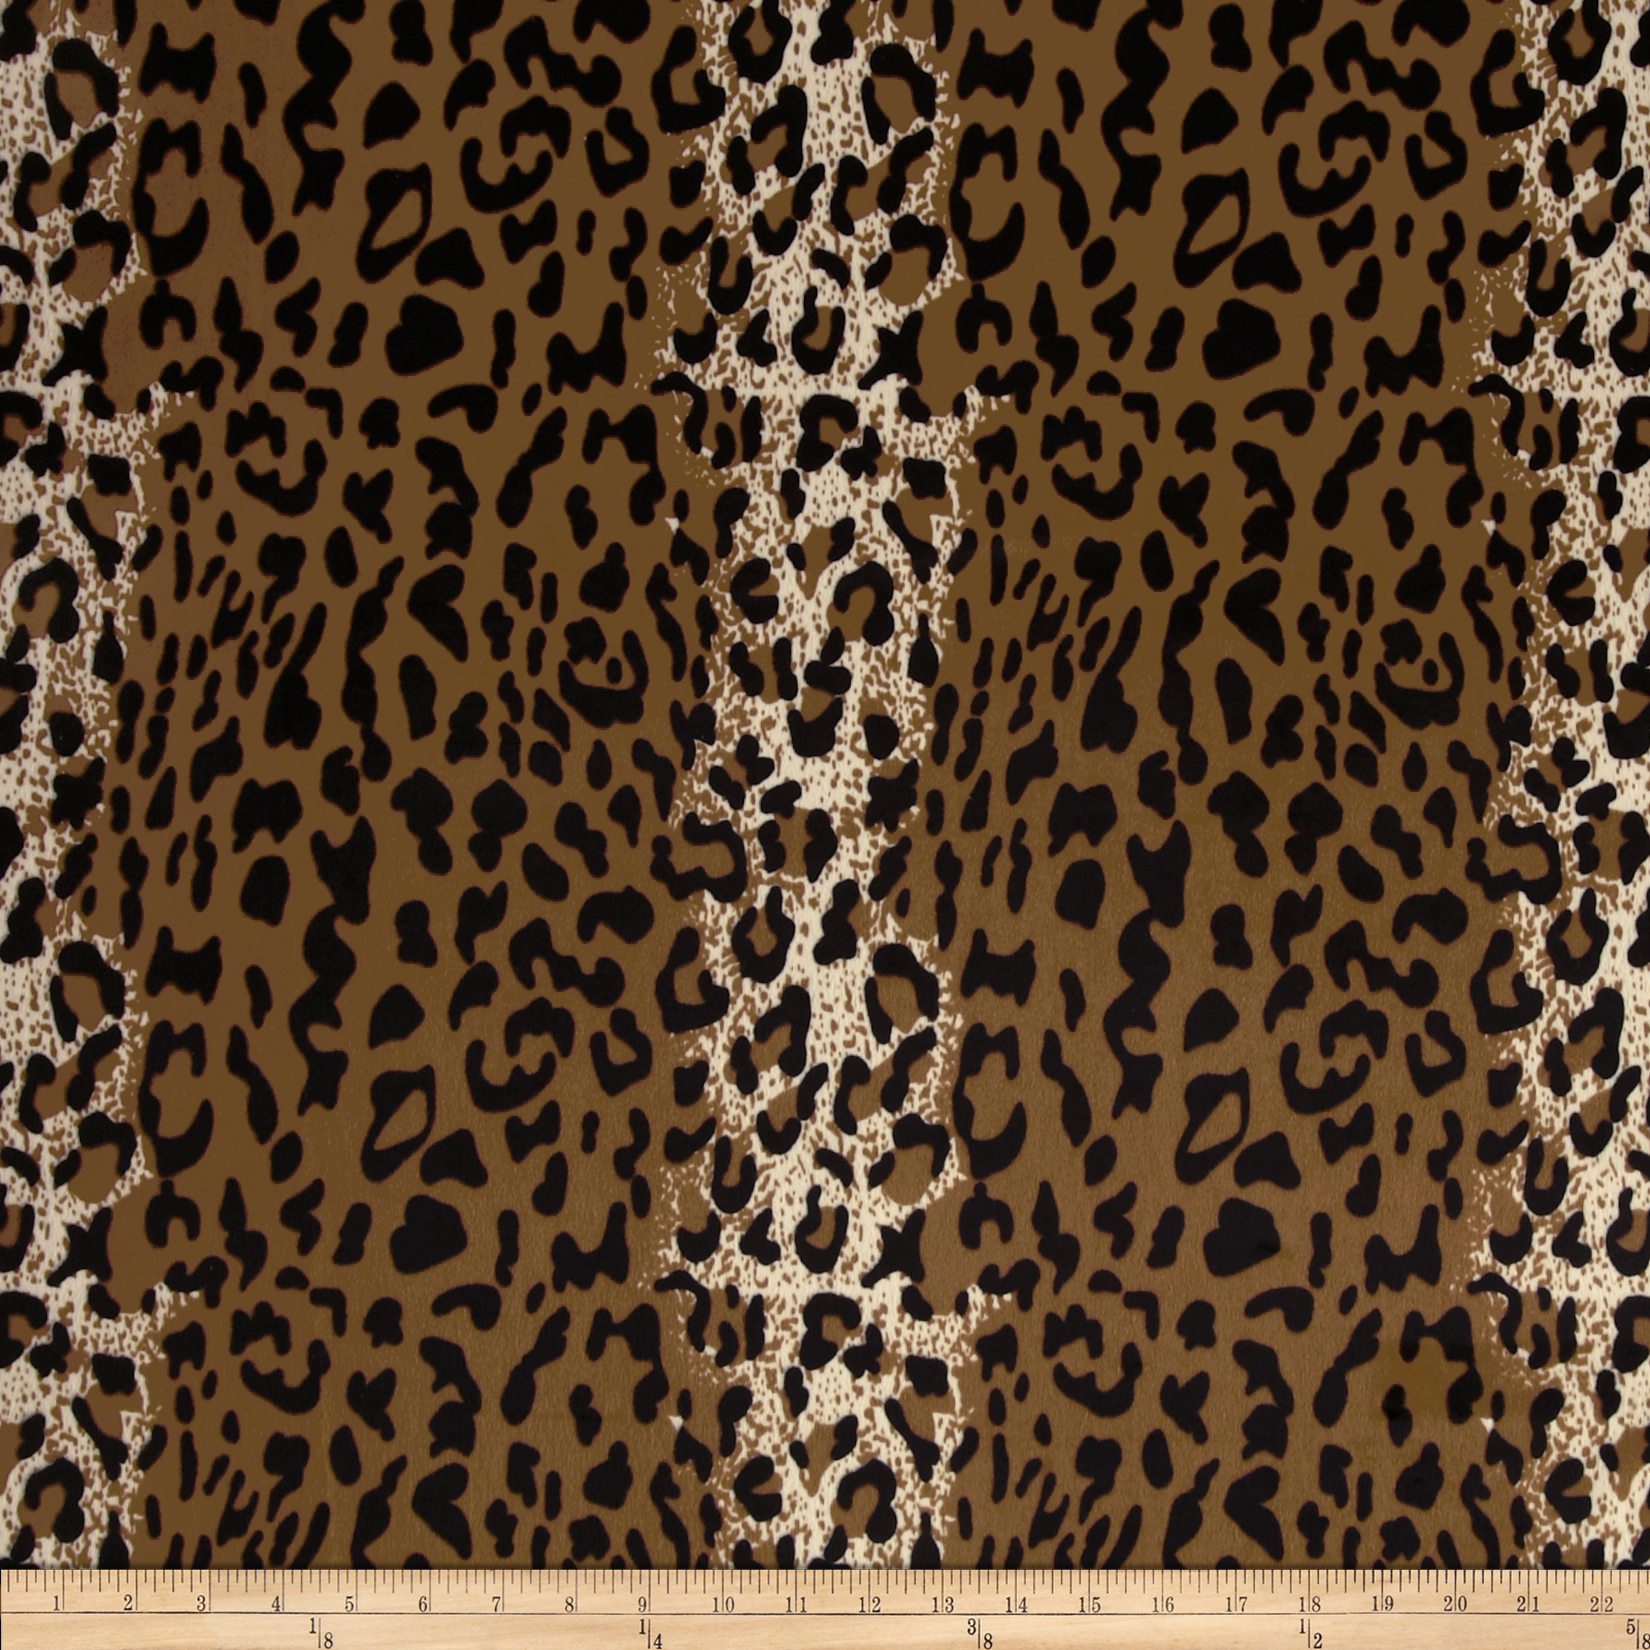 Animal Print Cheetah Brown/Black Fabric